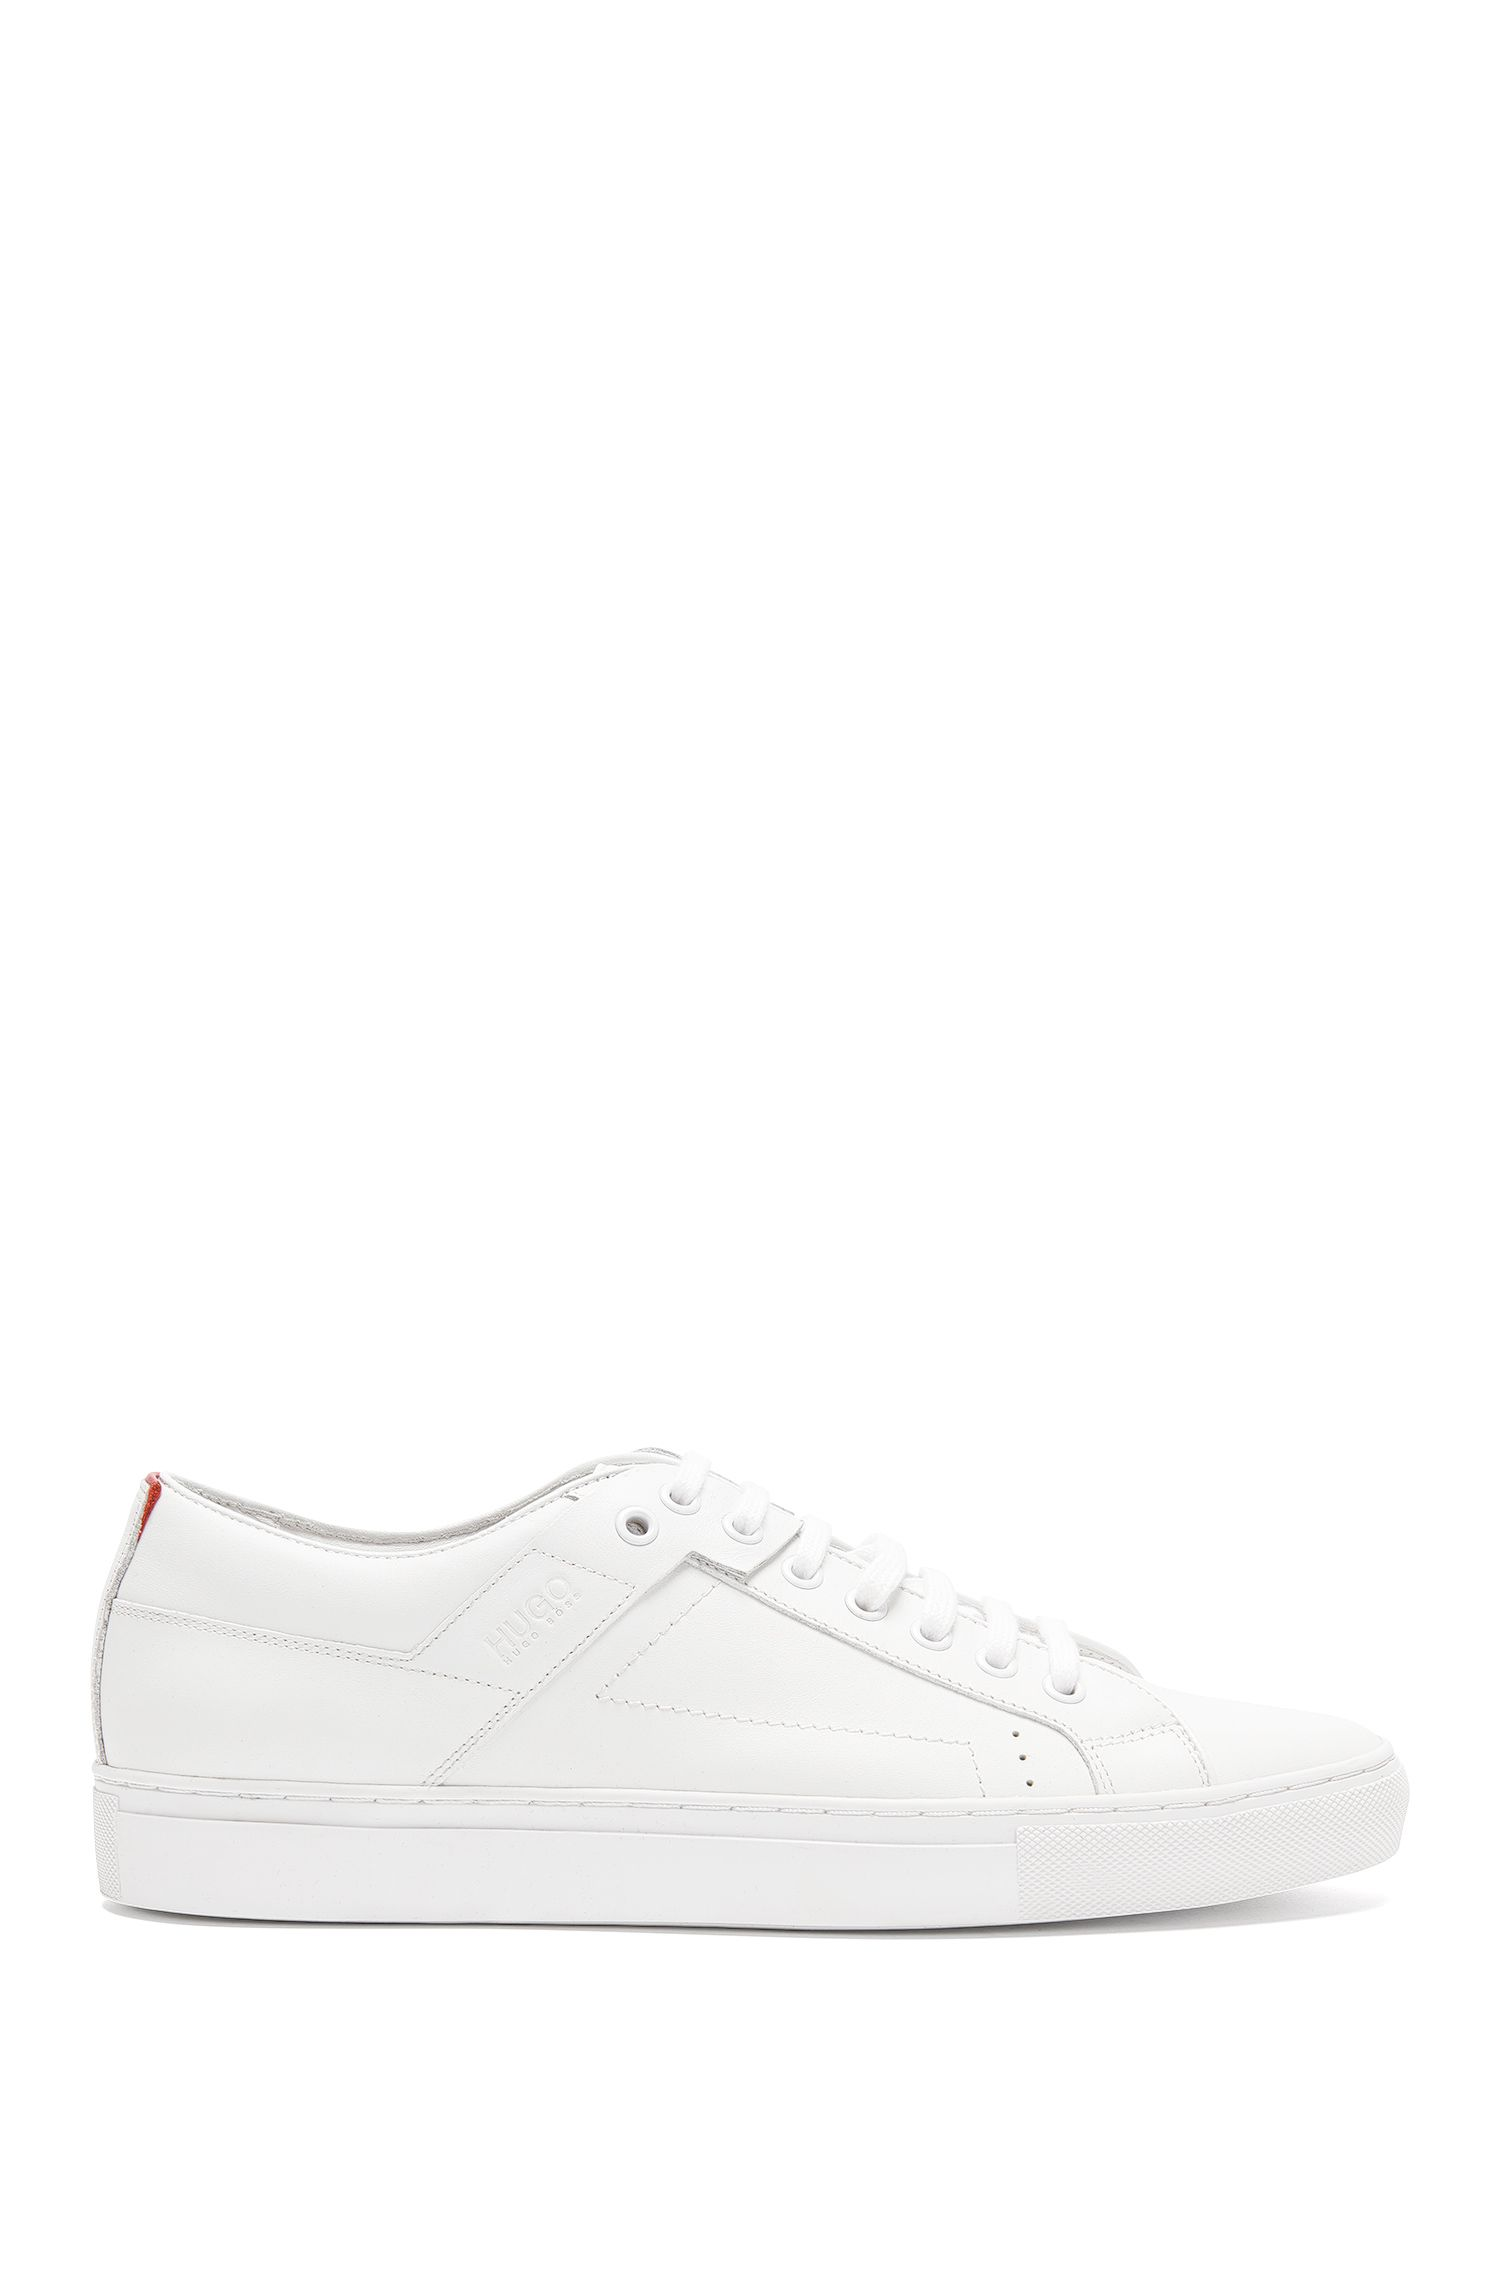 Sneakers stringate in pelle nappa liscia